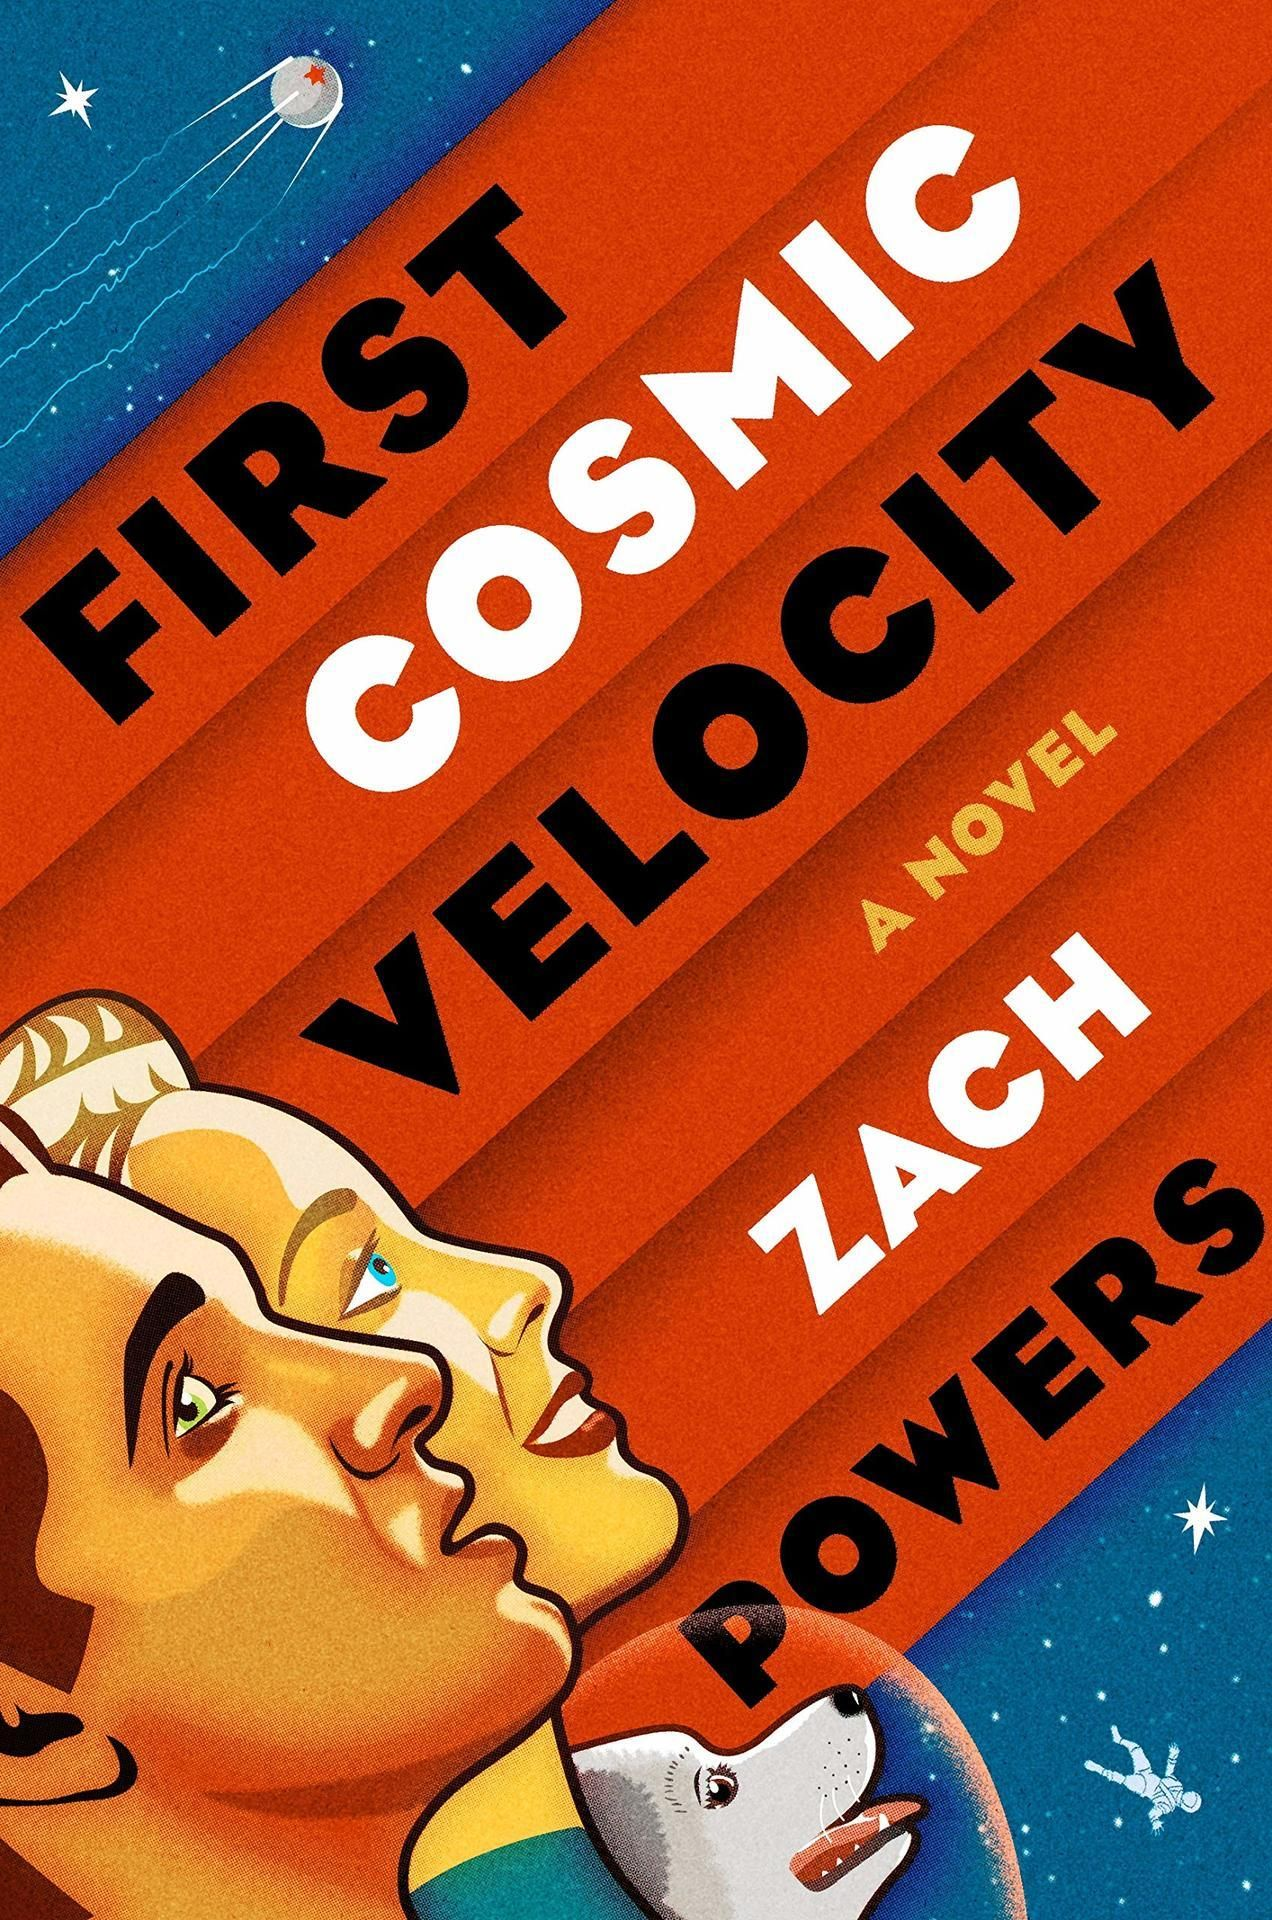 A debut novel from Putnam and award winning writer Zach Powers First Cosmic Velocity Read an inte